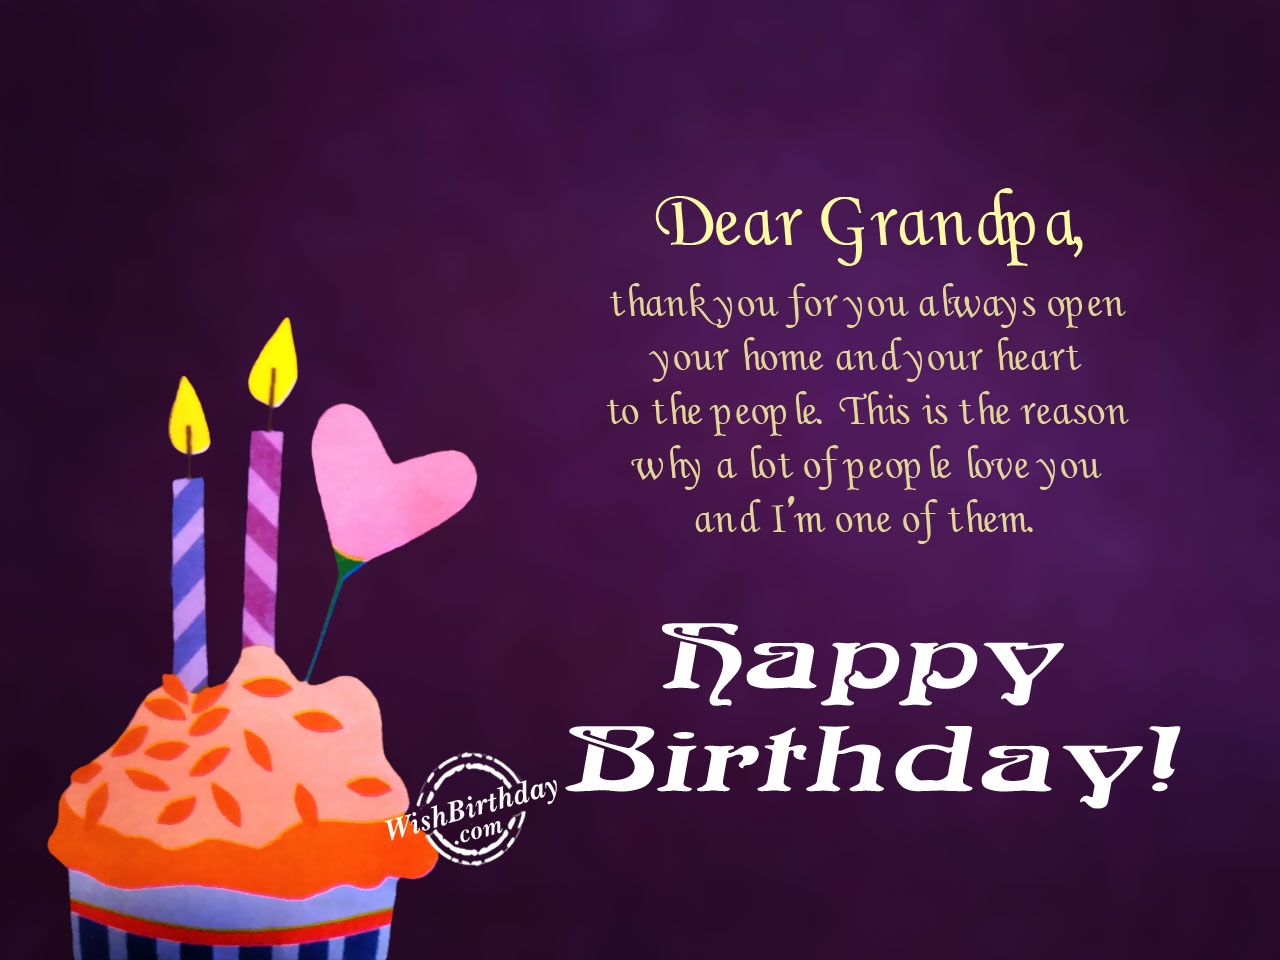 Birthday greetings to grandfather images greeting card examples birthday wishes for grandfather birthday images pictures his is the reason why a lot of people bookmarktalkfo Gallery